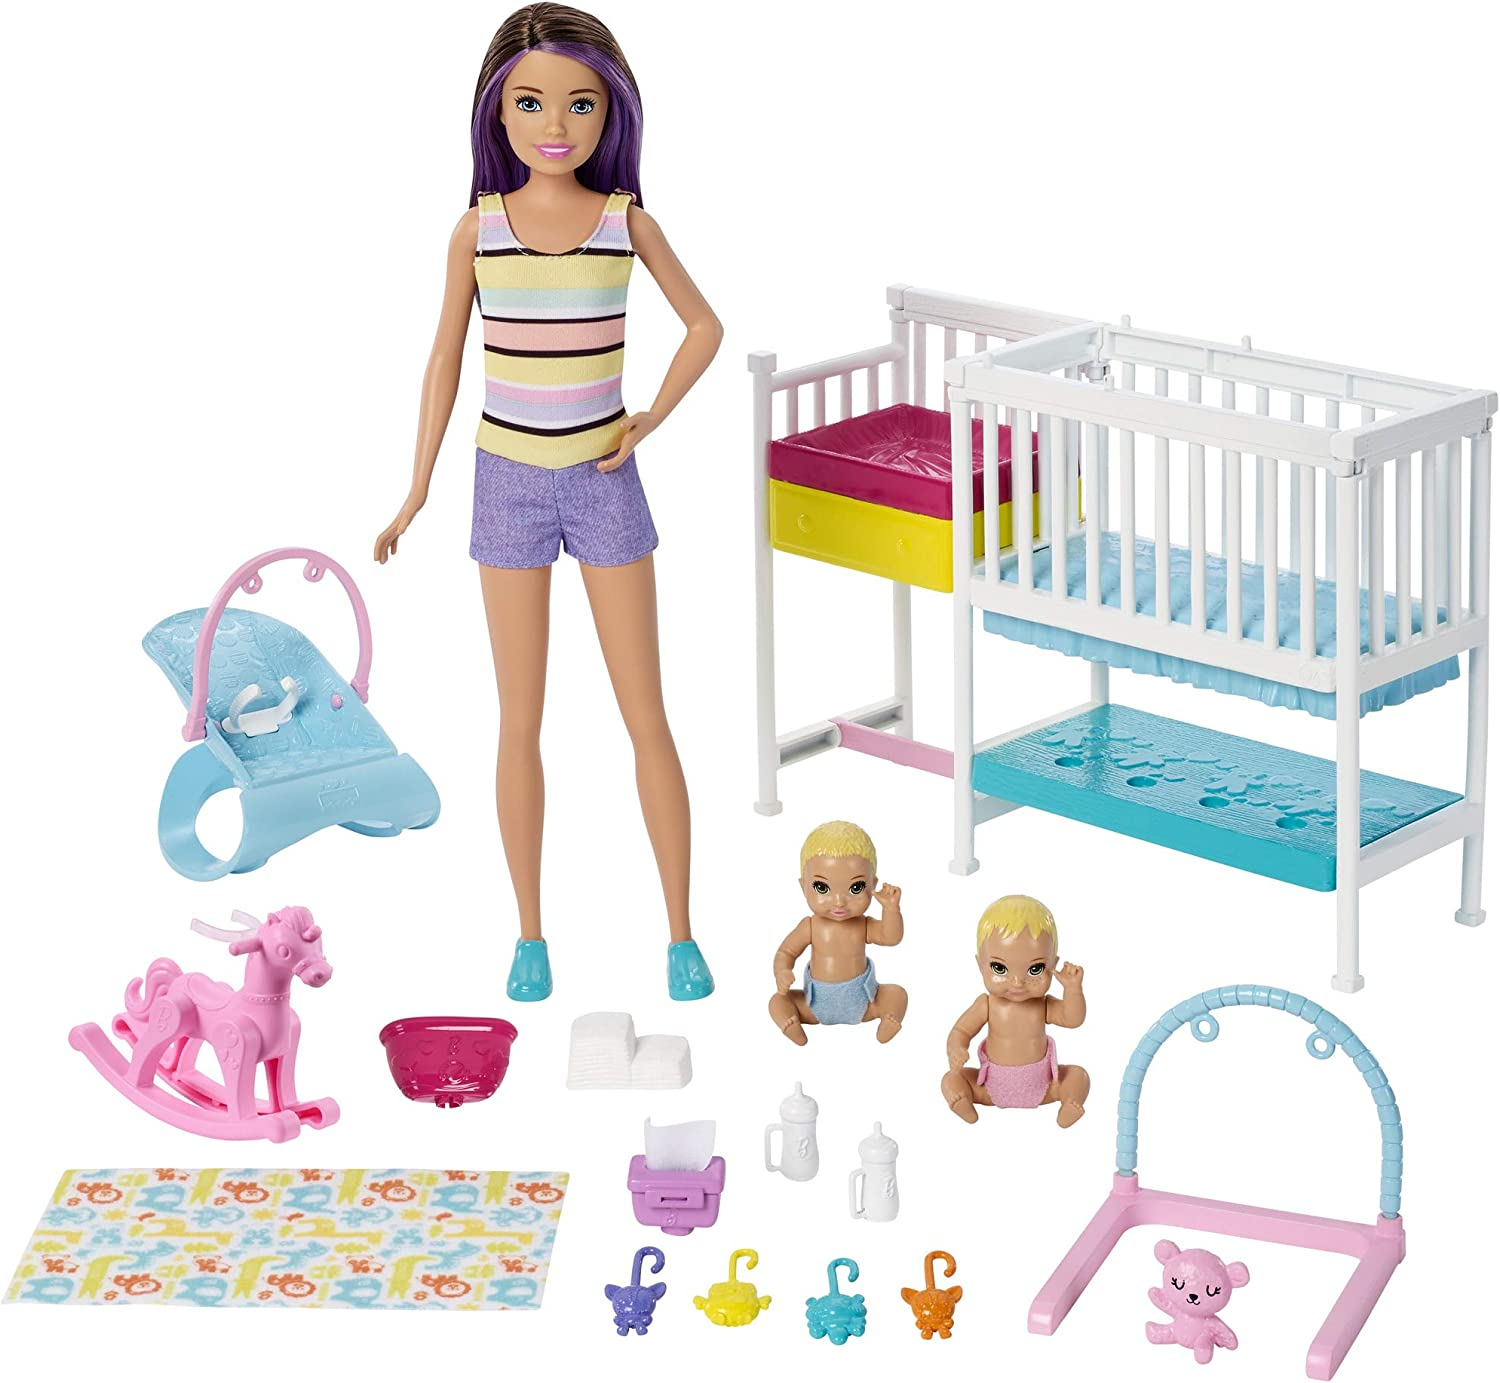 Barbie Nursery Playset with Skipper Babysitters Inc Doll 2 Baby Dolls Crib